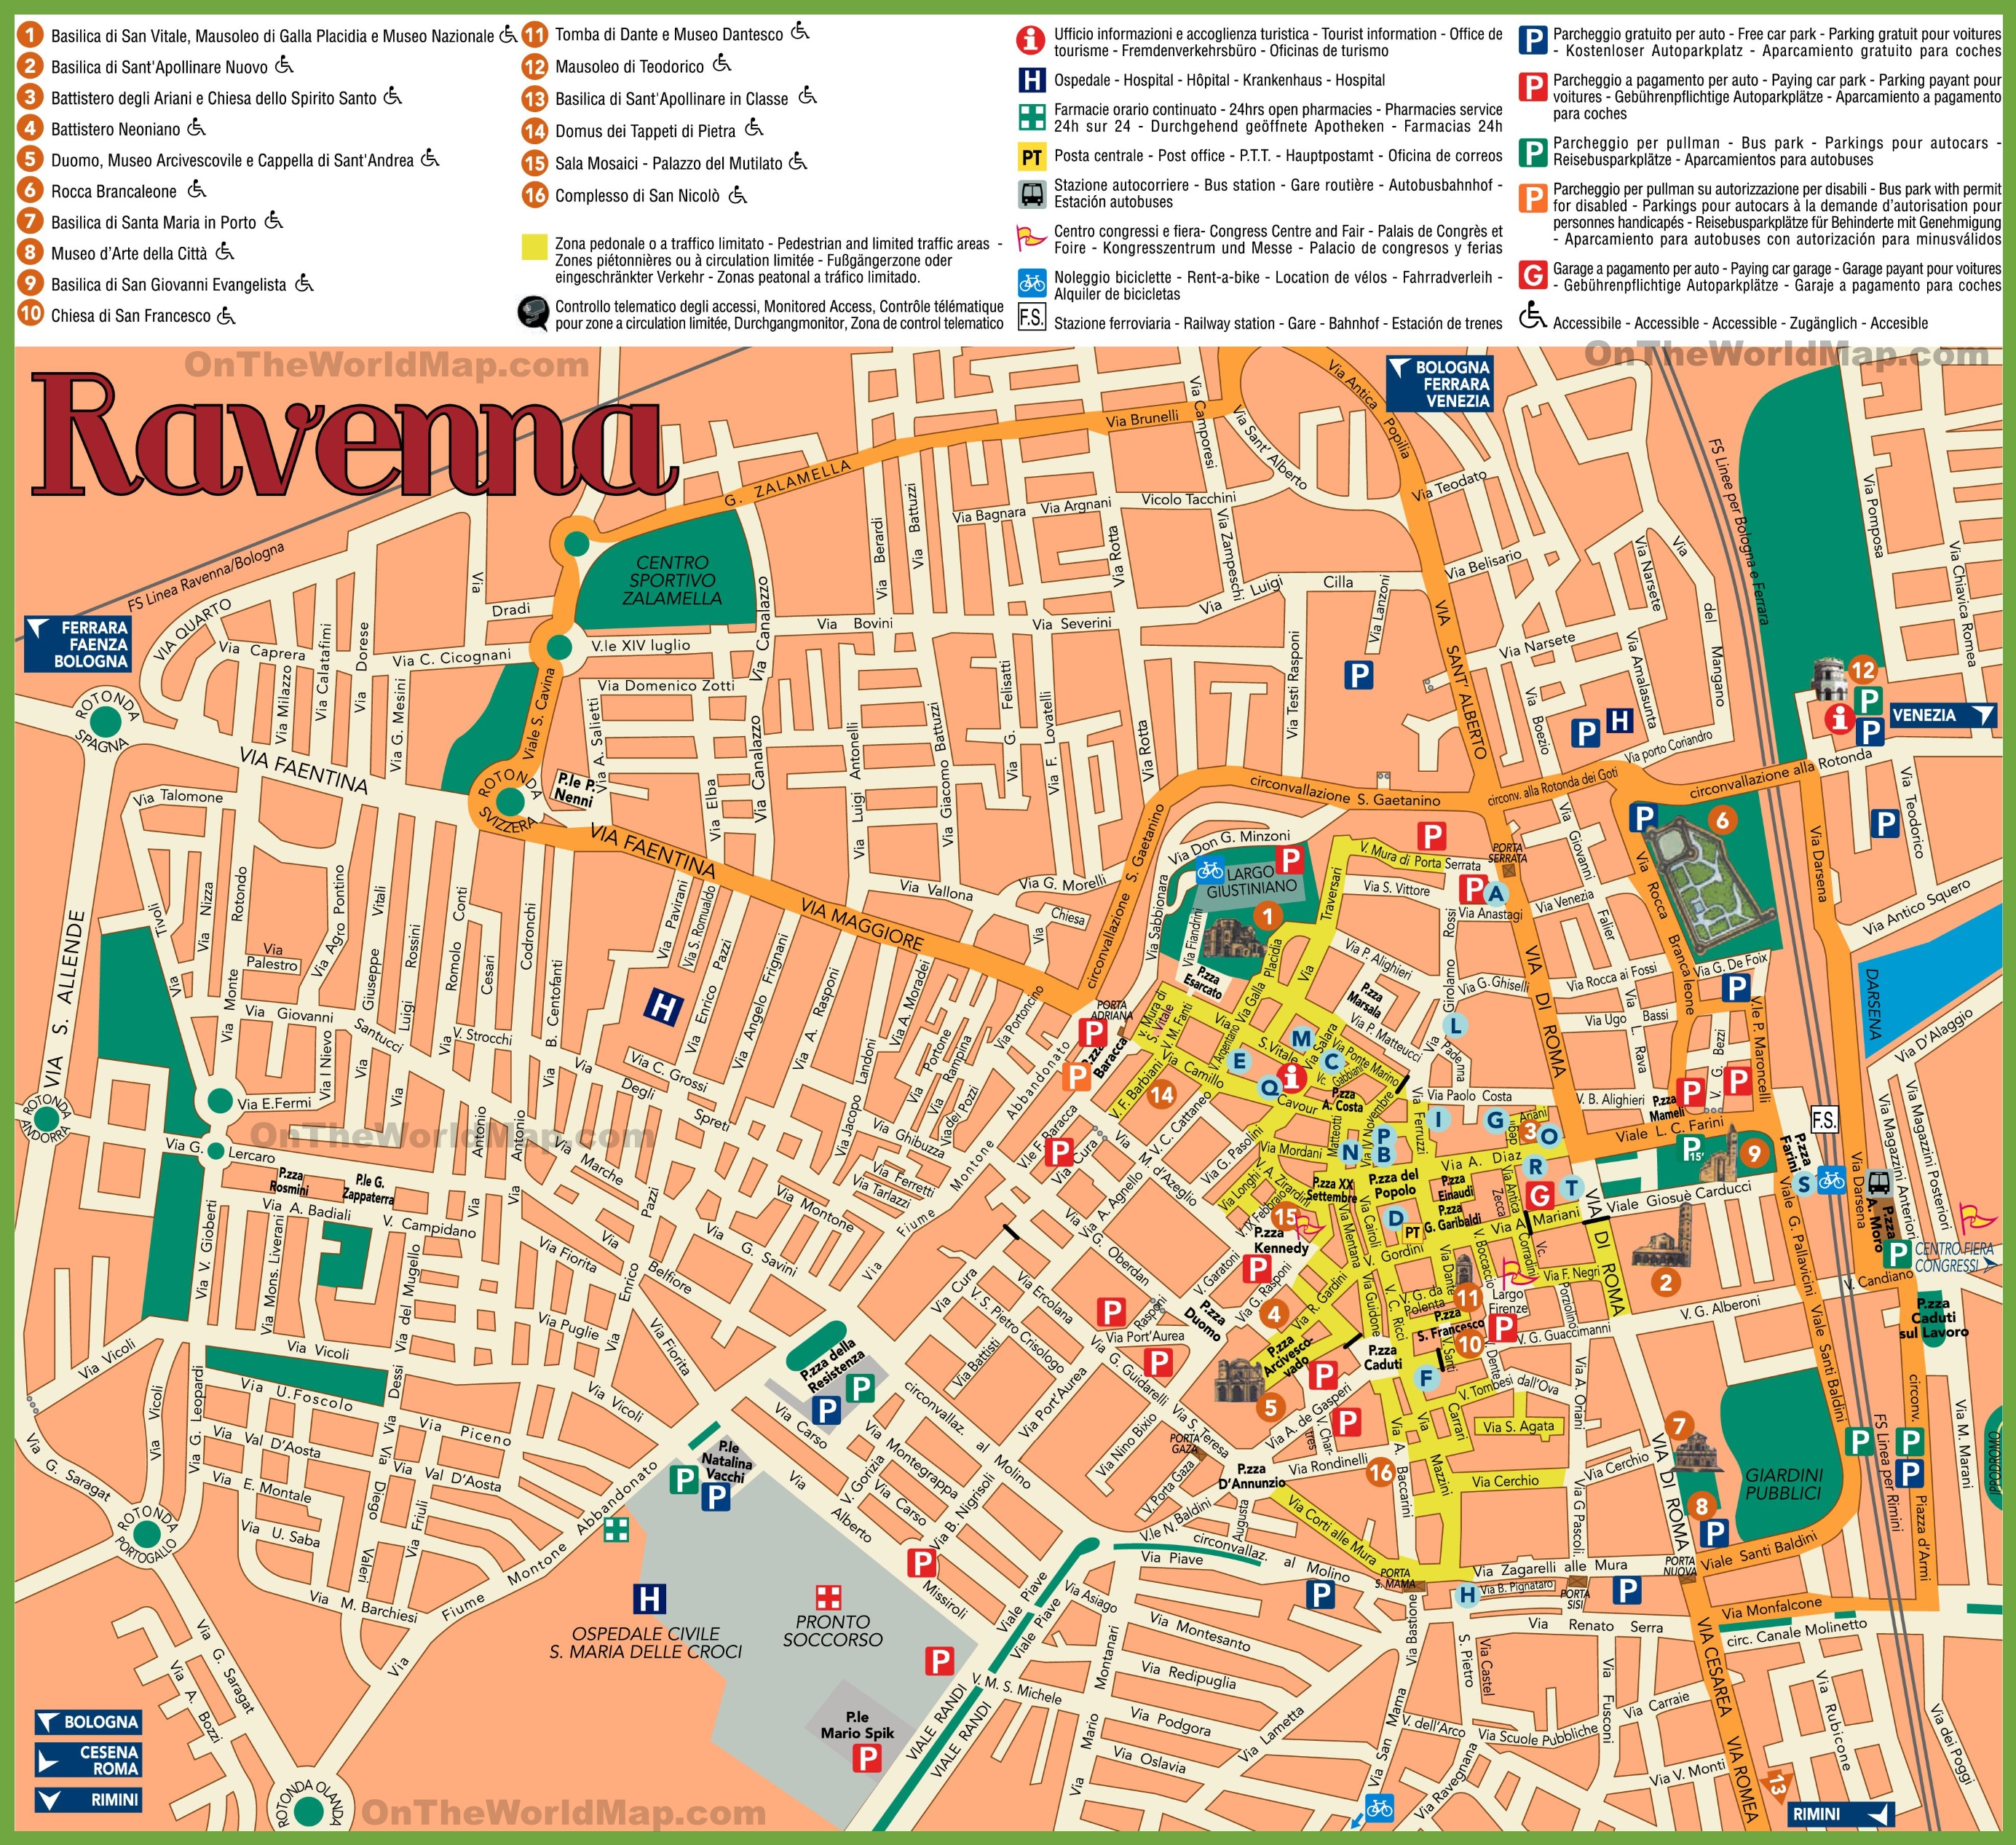 Ravenna sightseeing map